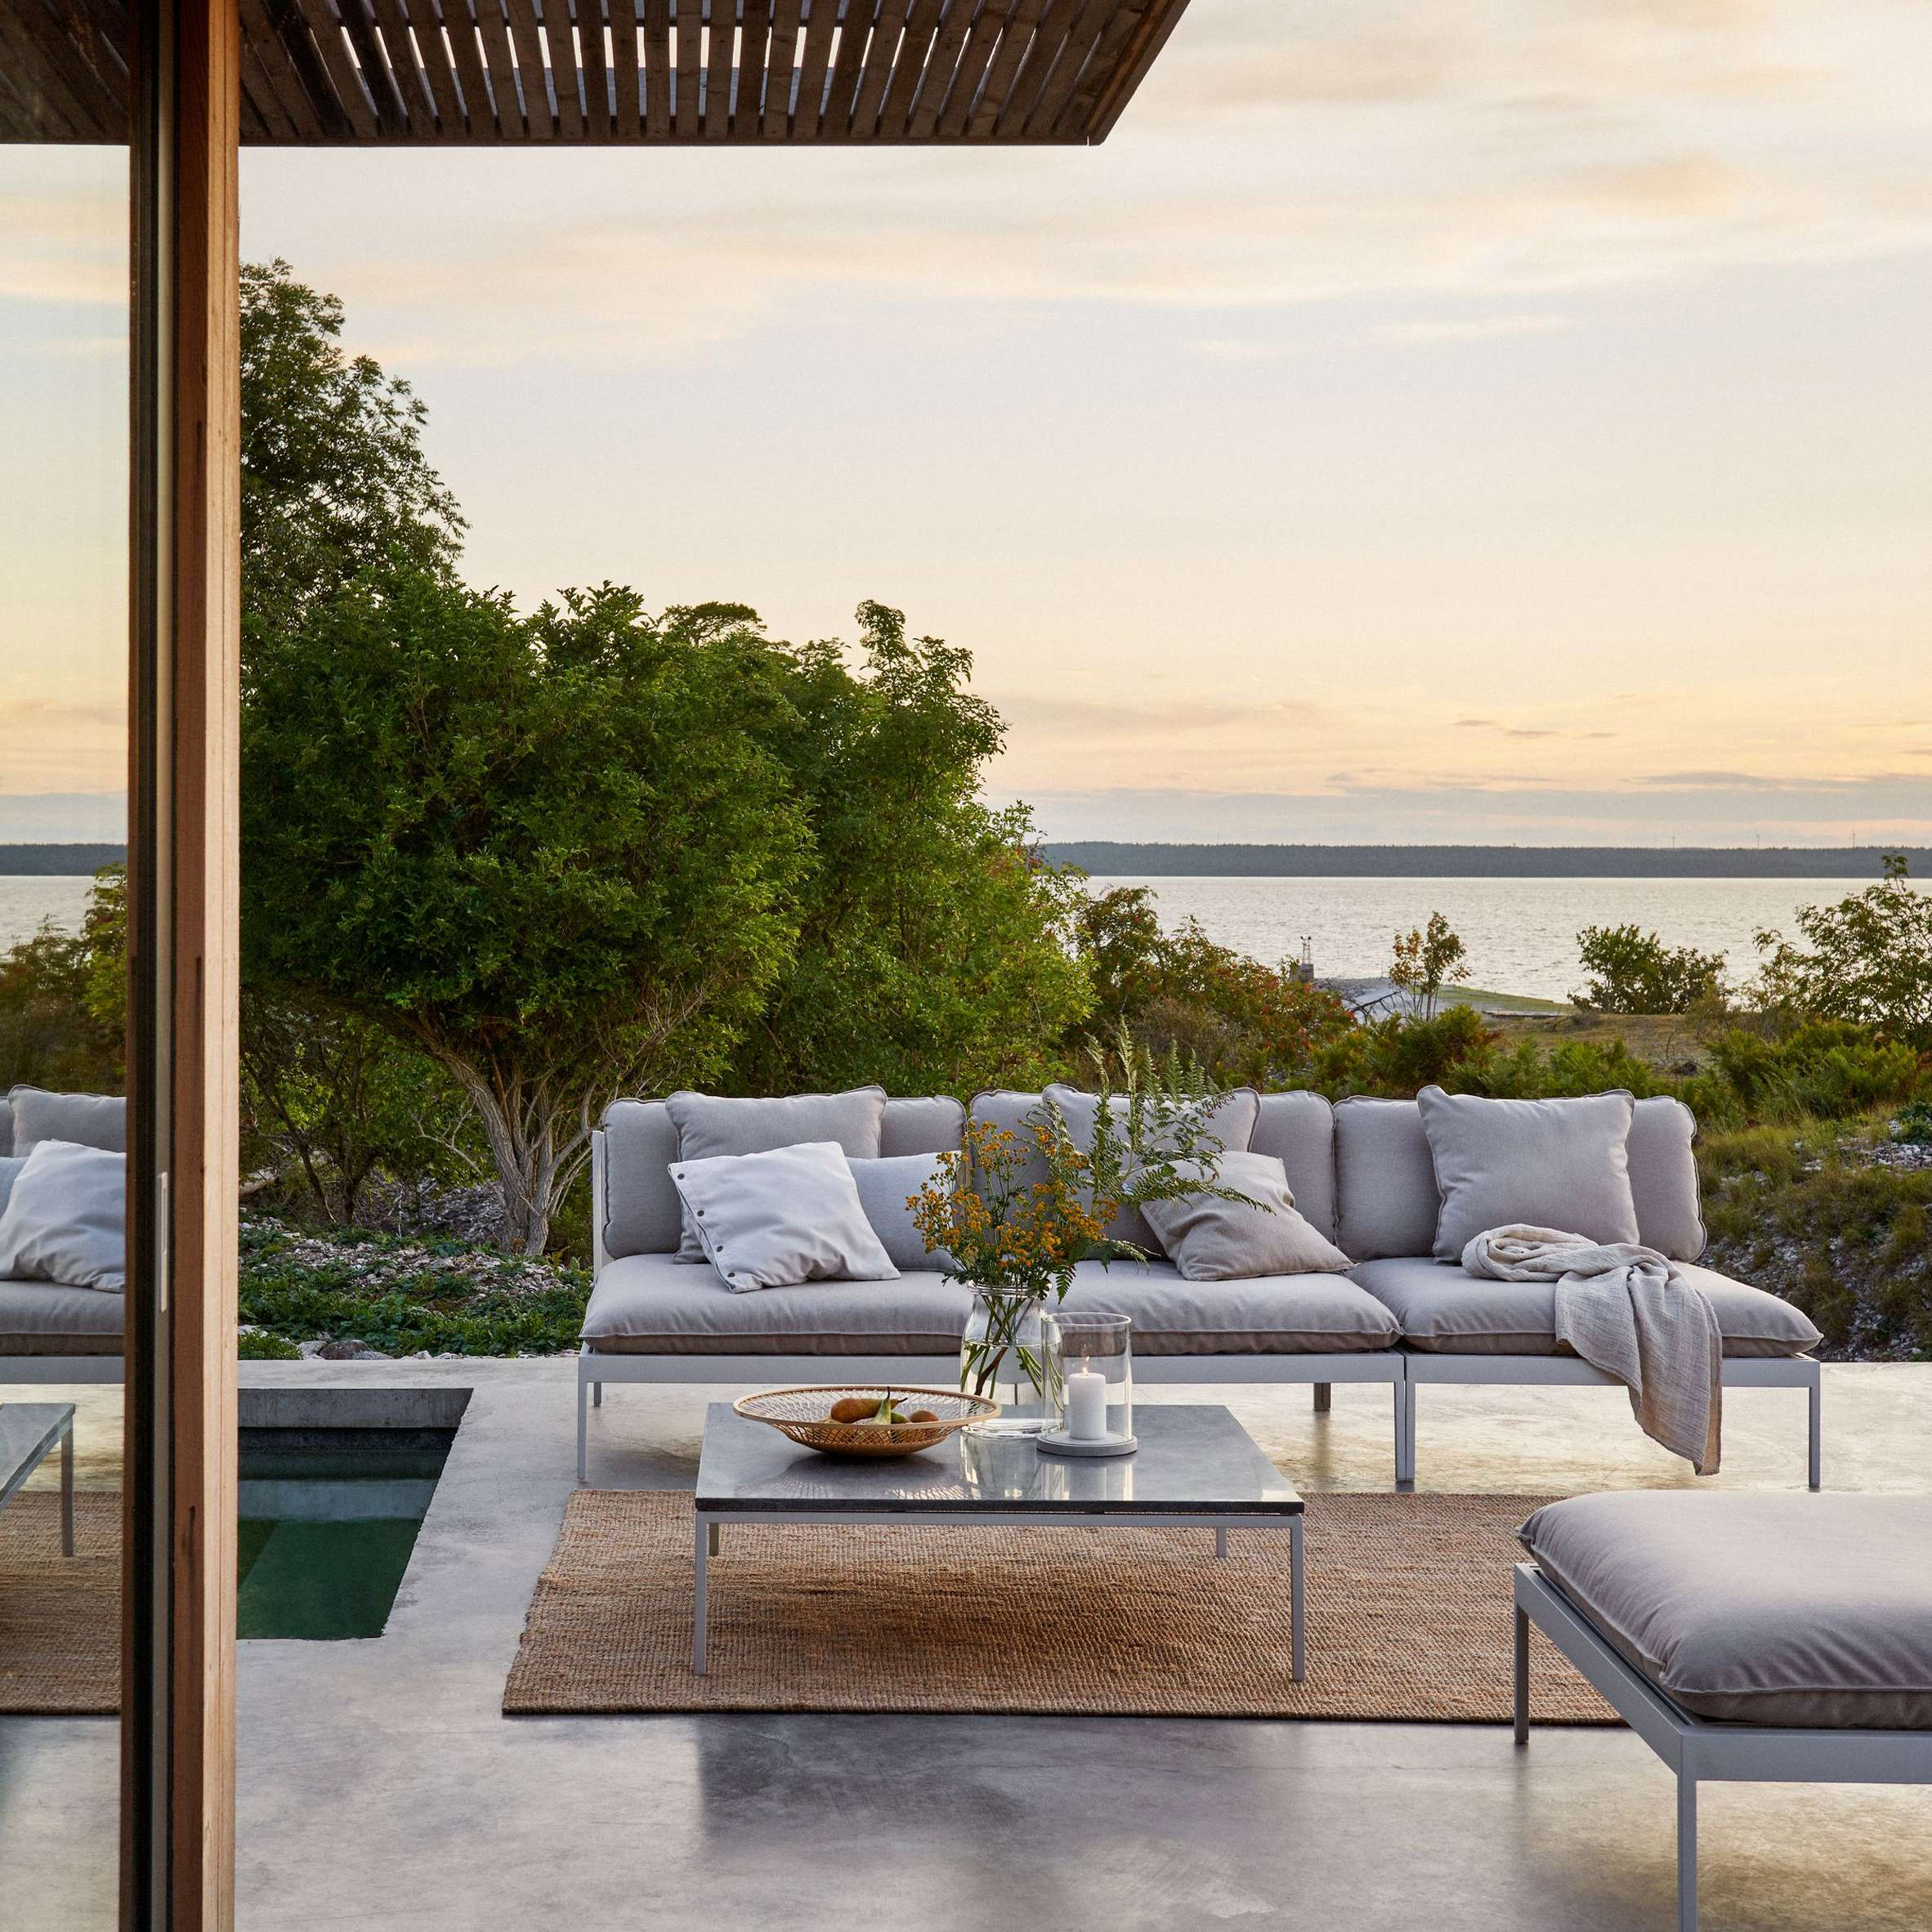 Designed by the founders of Swedish brand Skargaarden for their own home, the Bönan outdoor sofa is made to stay in place year-round